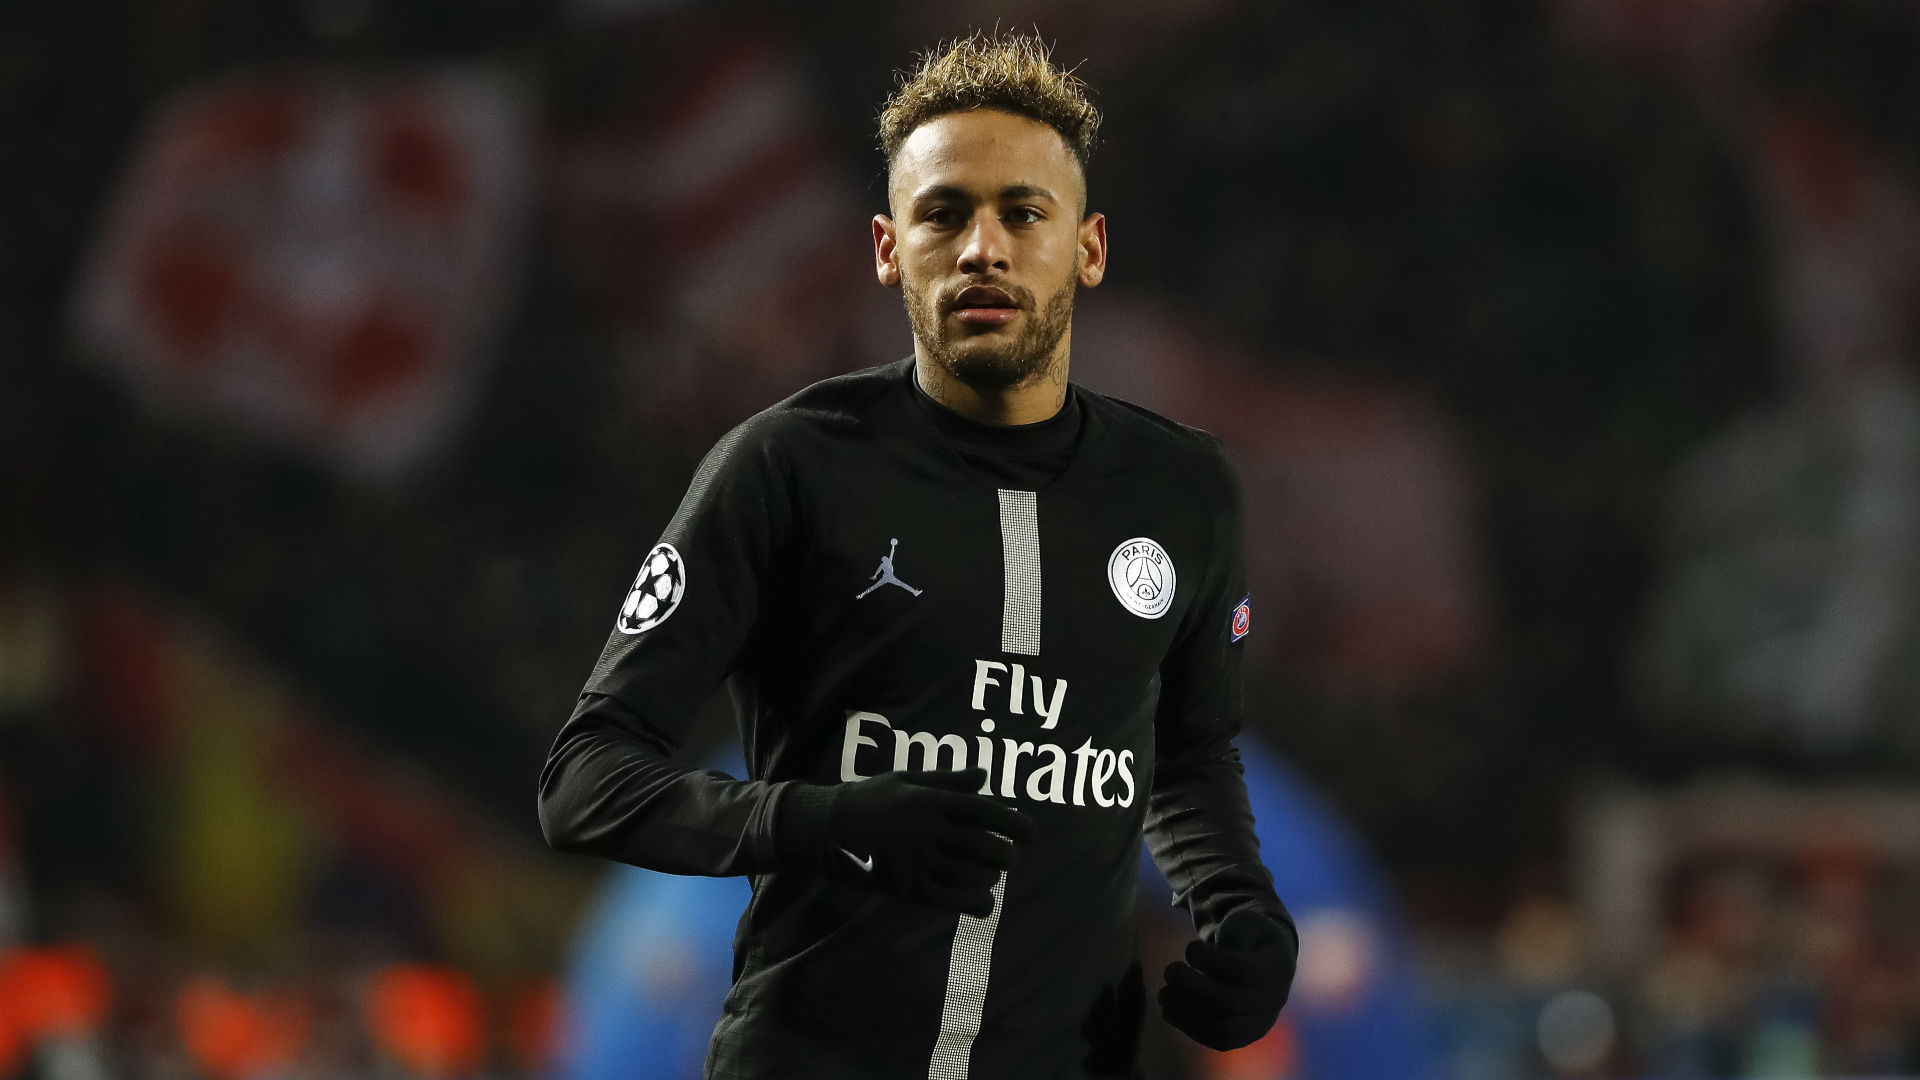 Reports suggested Neymar's father had been in regular contact with Barcelona over a return, but Ernesto Valverde says he has heard nothing.